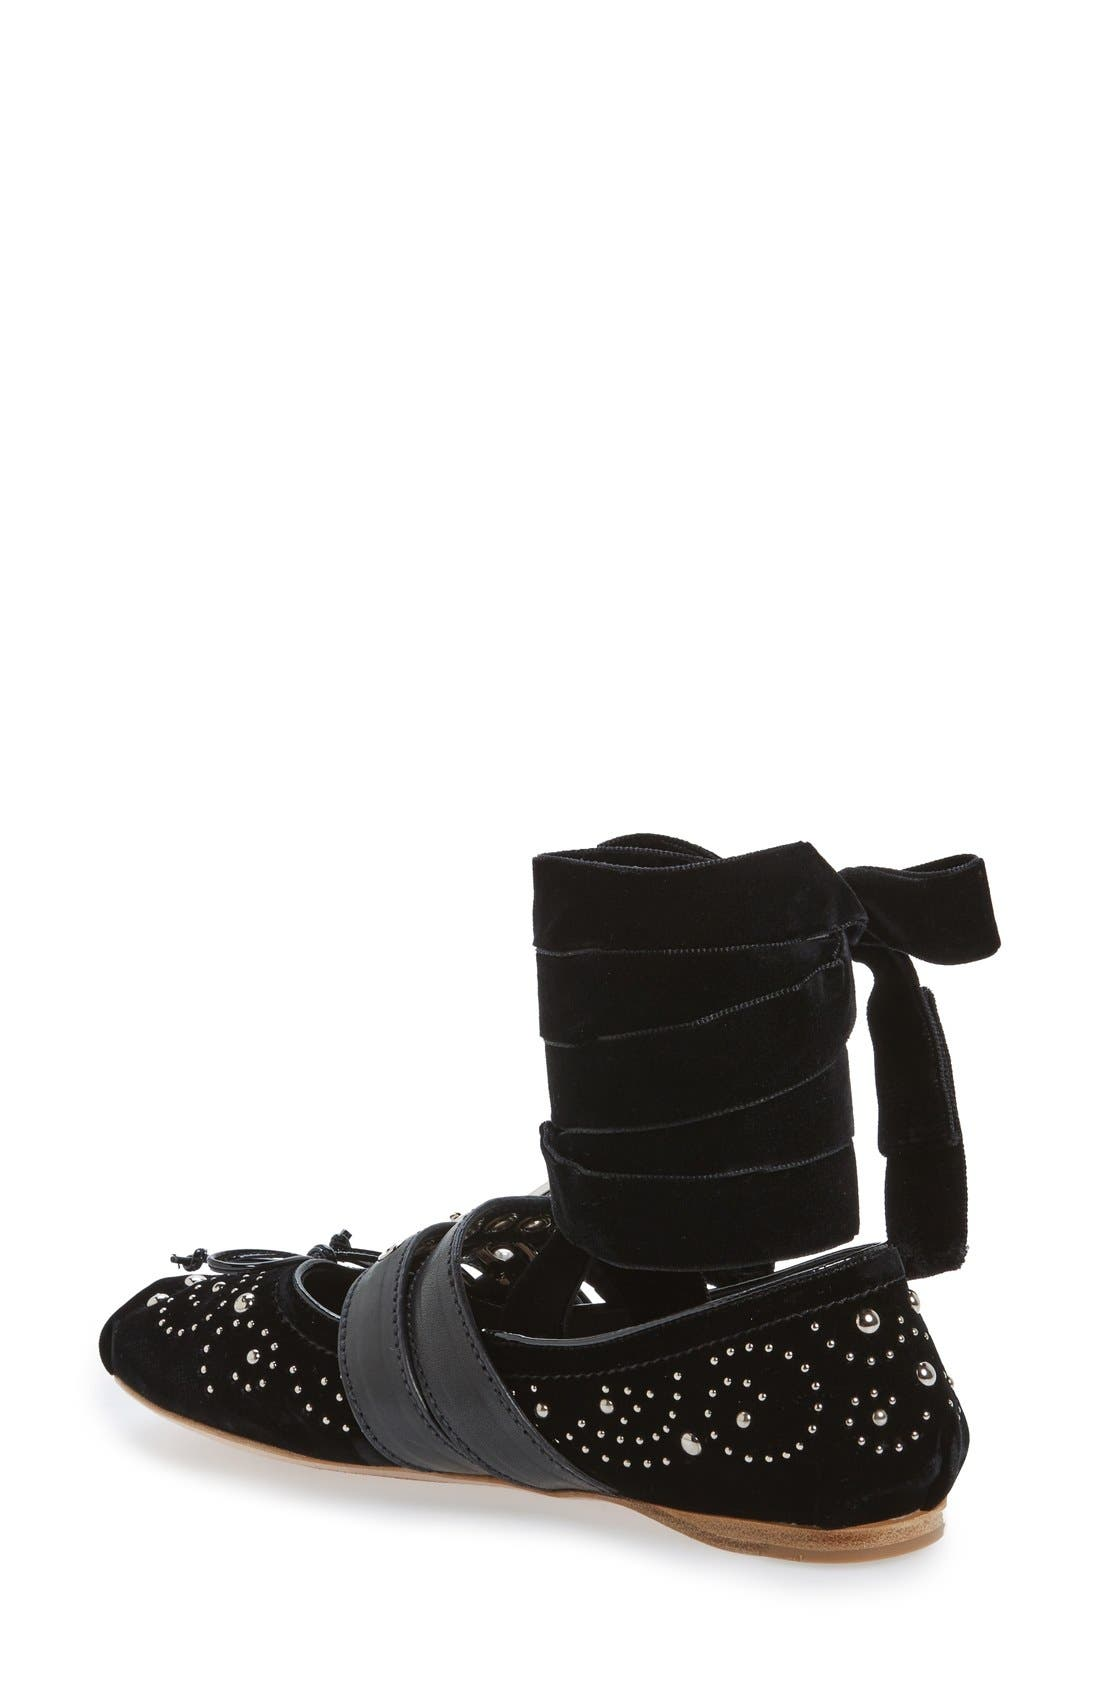 Alternate Image 2  - Miu Miu Studded Ballet Flat (Women)